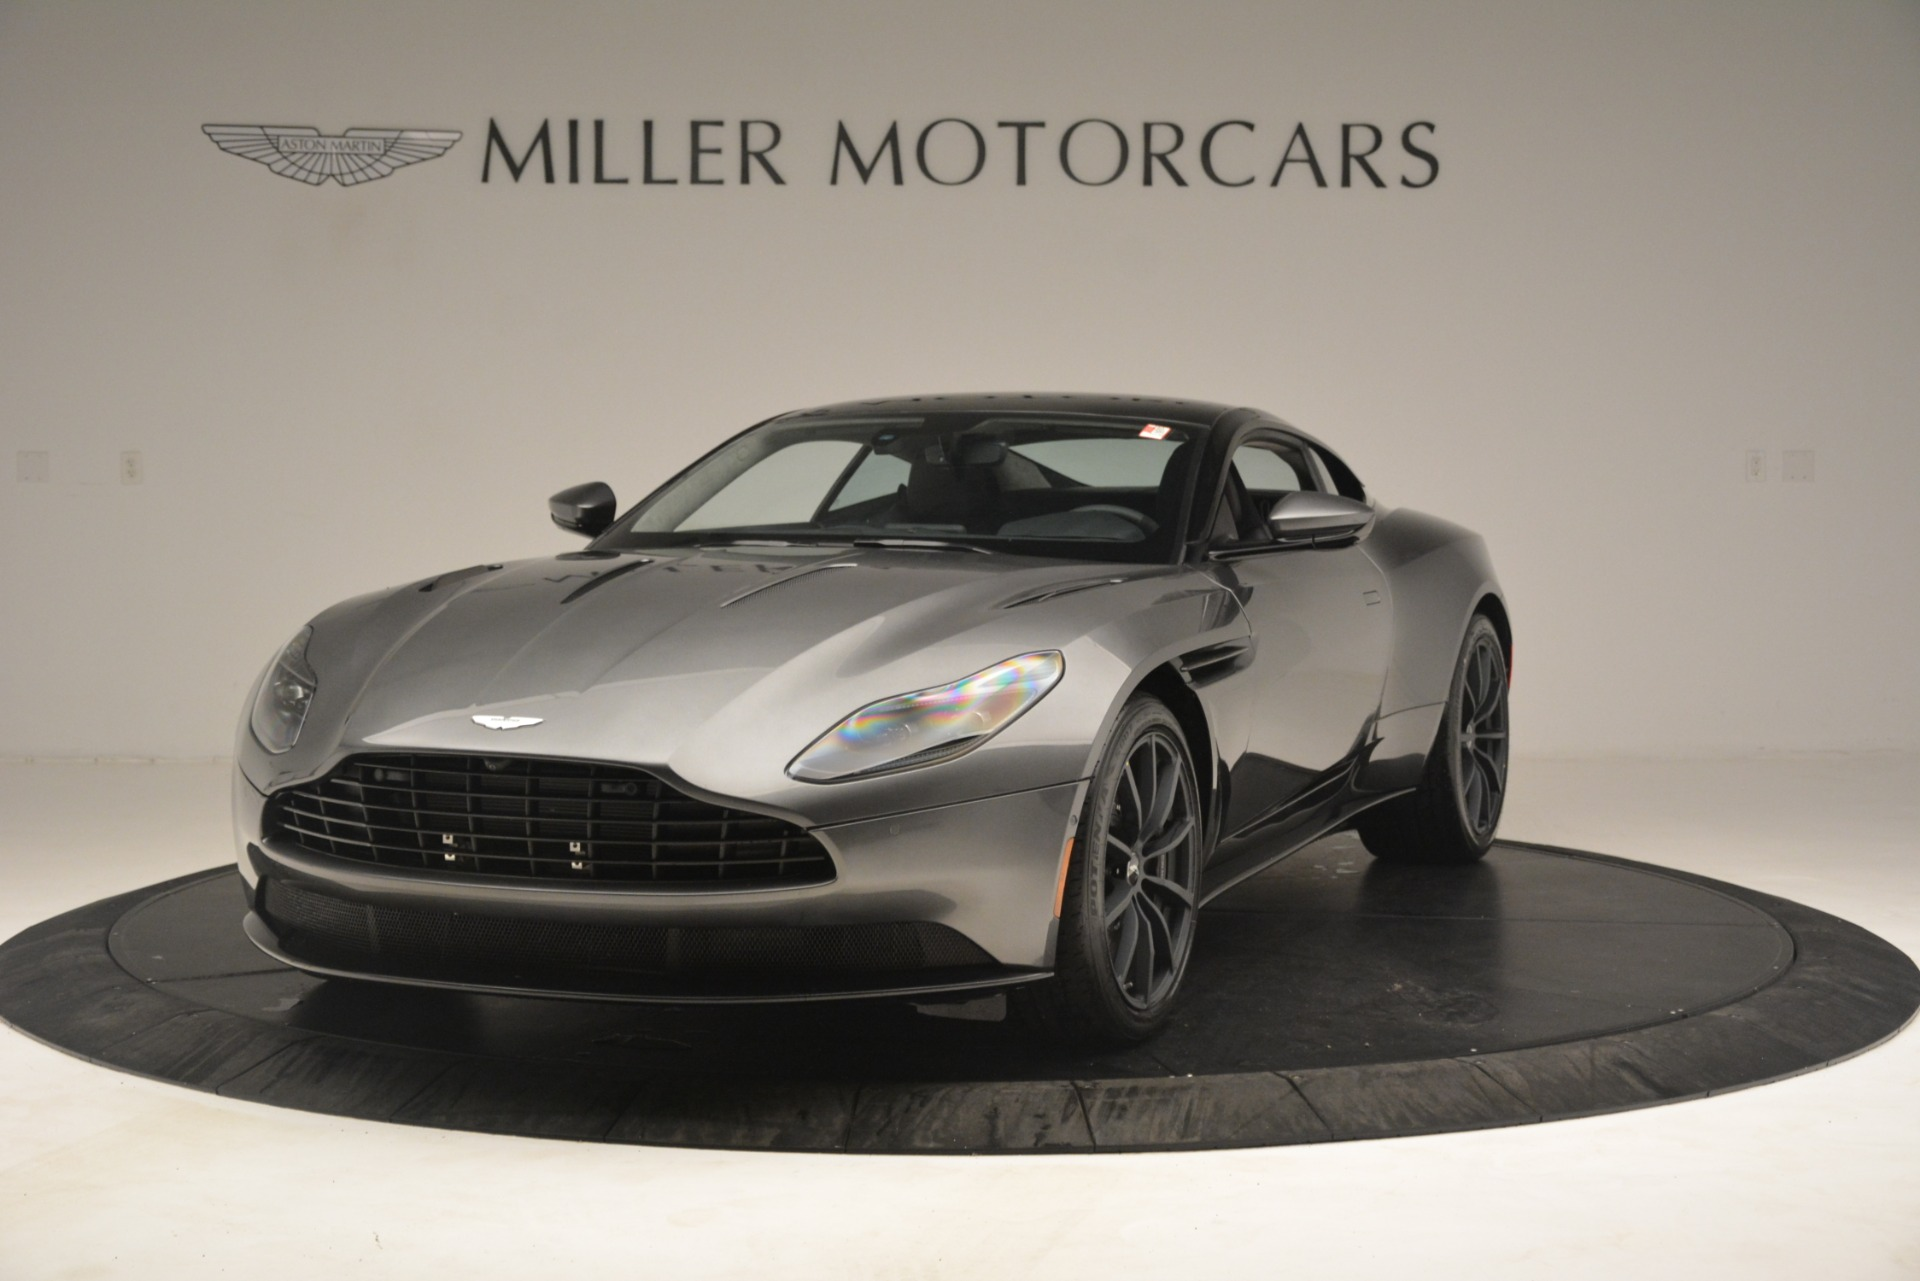 New 2019 Aston Martin DB11 V12 AMR Coupe For Sale In Greenwich, CT 3123_p2